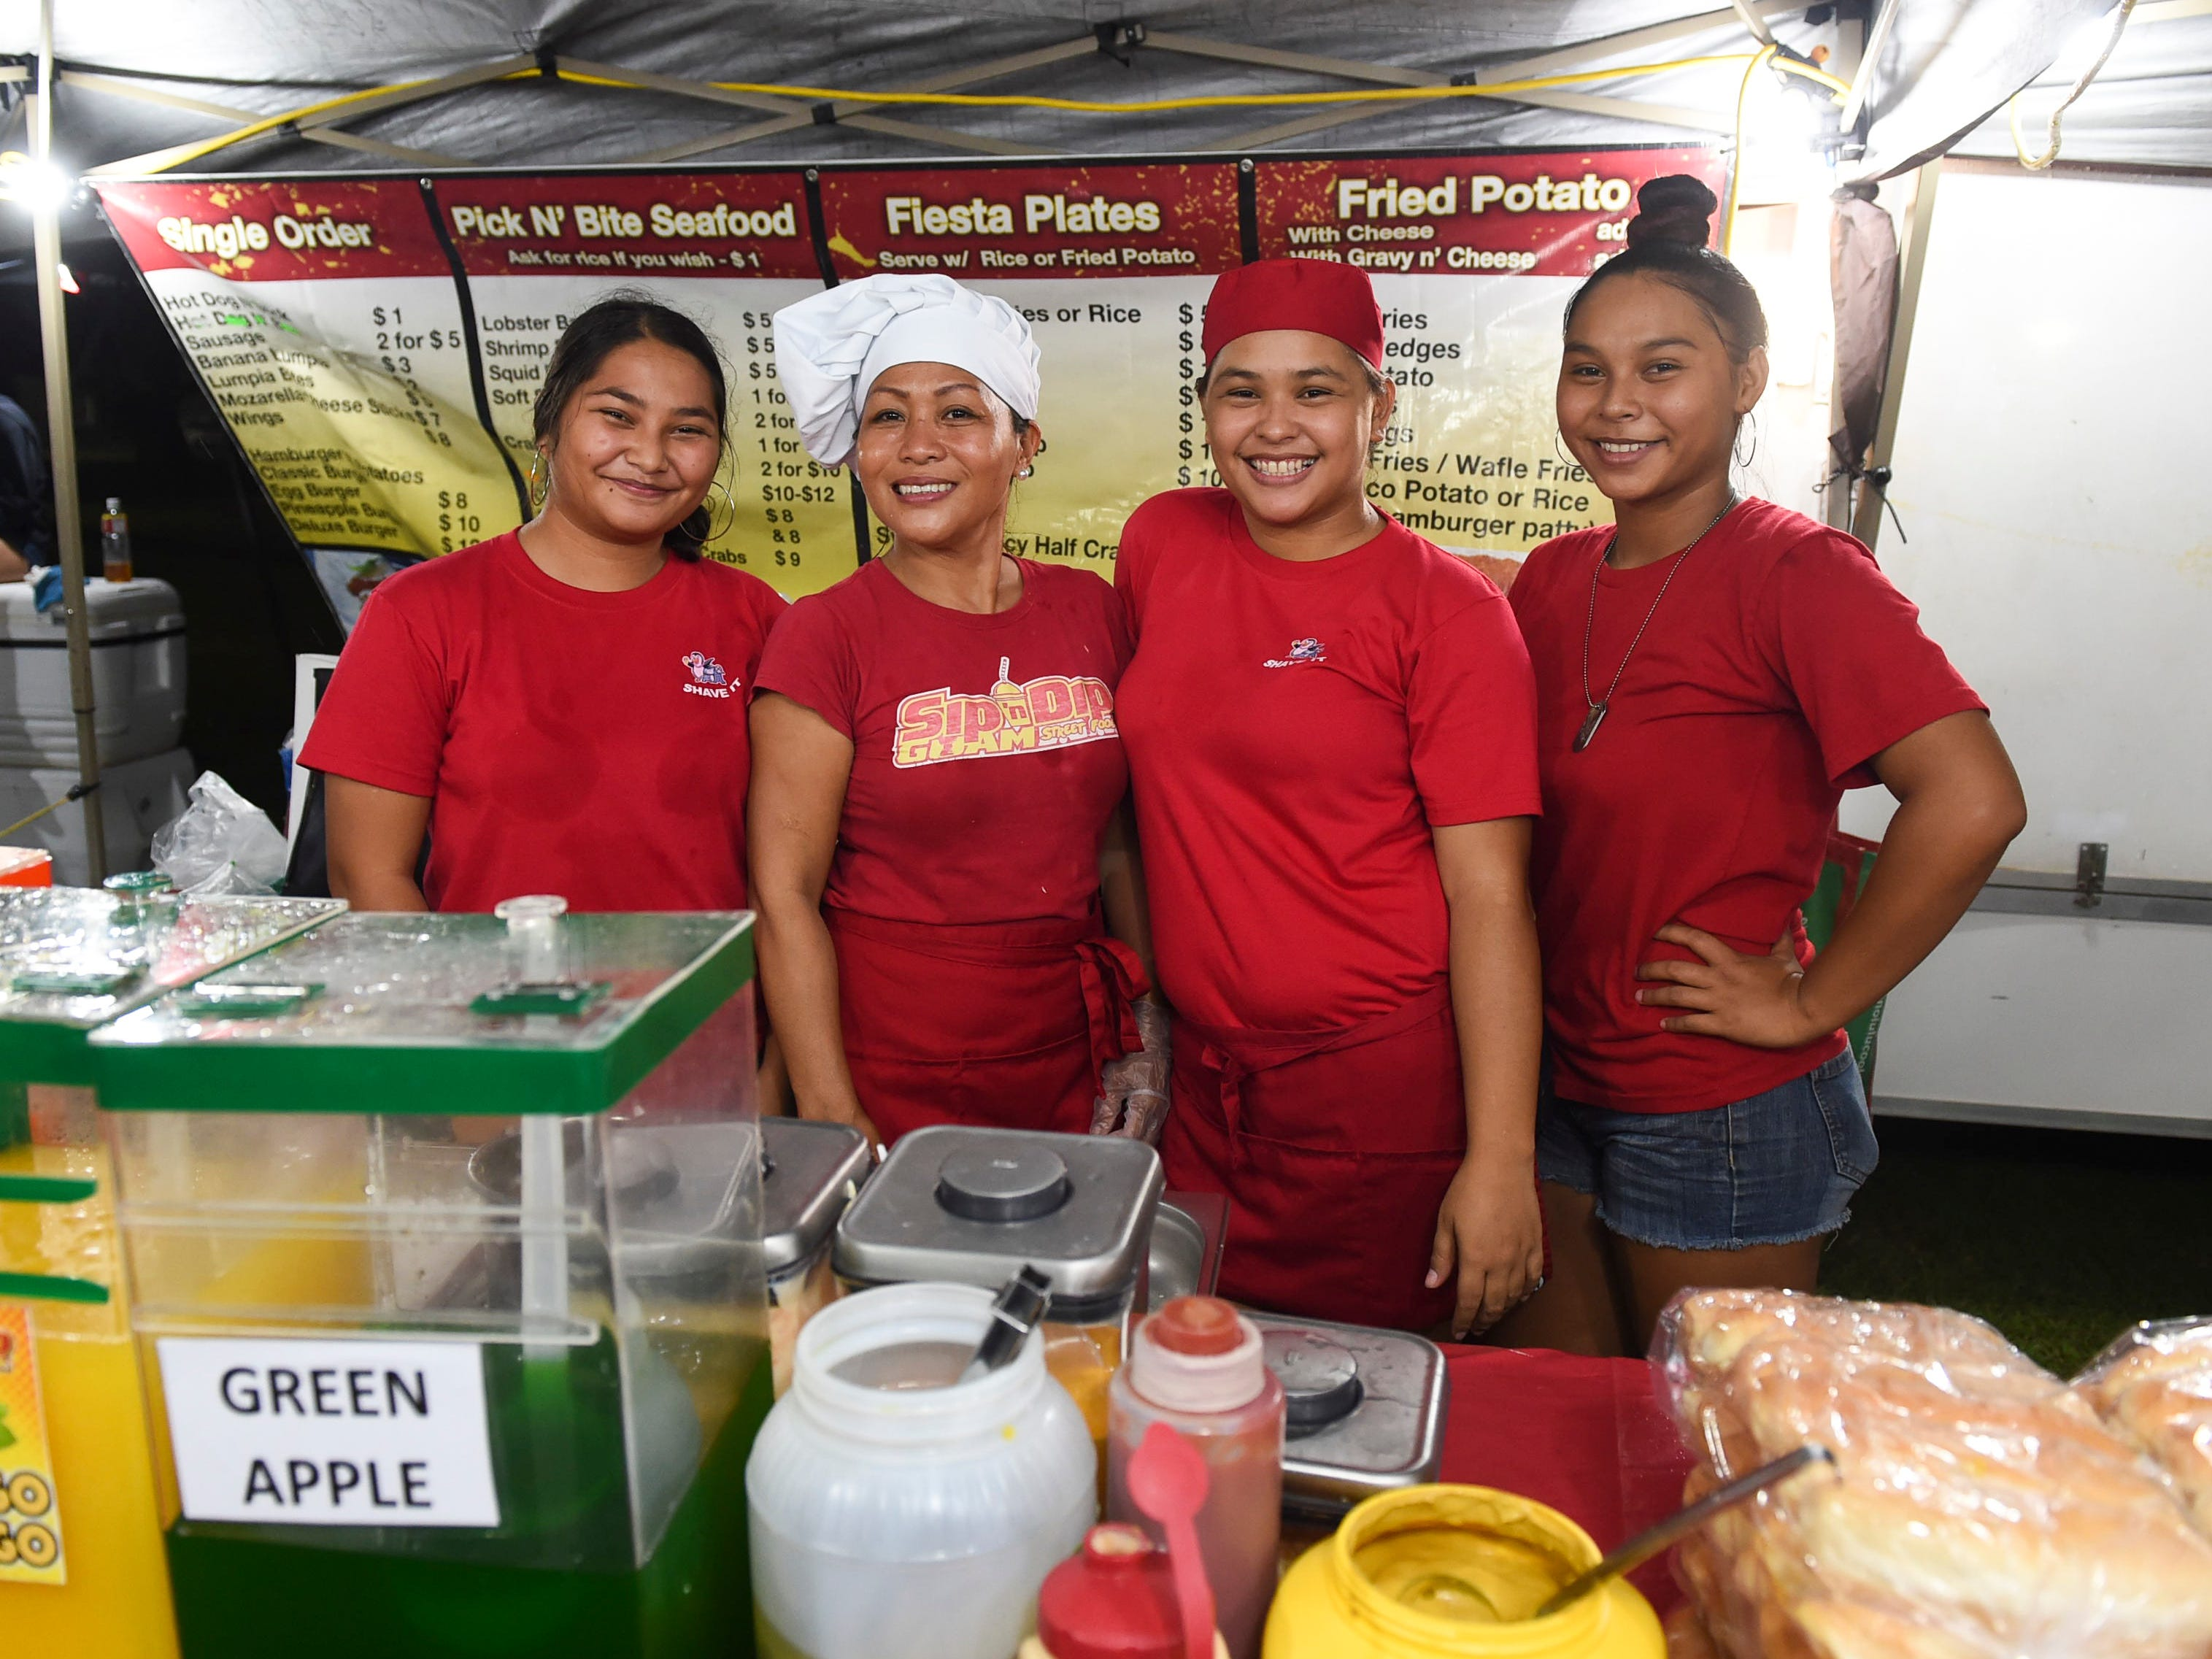 Sip N' Dip Guam and Shave It employees during New Year's Eve at the Gov. Joseph Flores Beach Park on Dec. 31, 2018. From left: Tisha Indalecio, owner Marisol Malumay, Leila Evaristo, and Liela Evaristo.